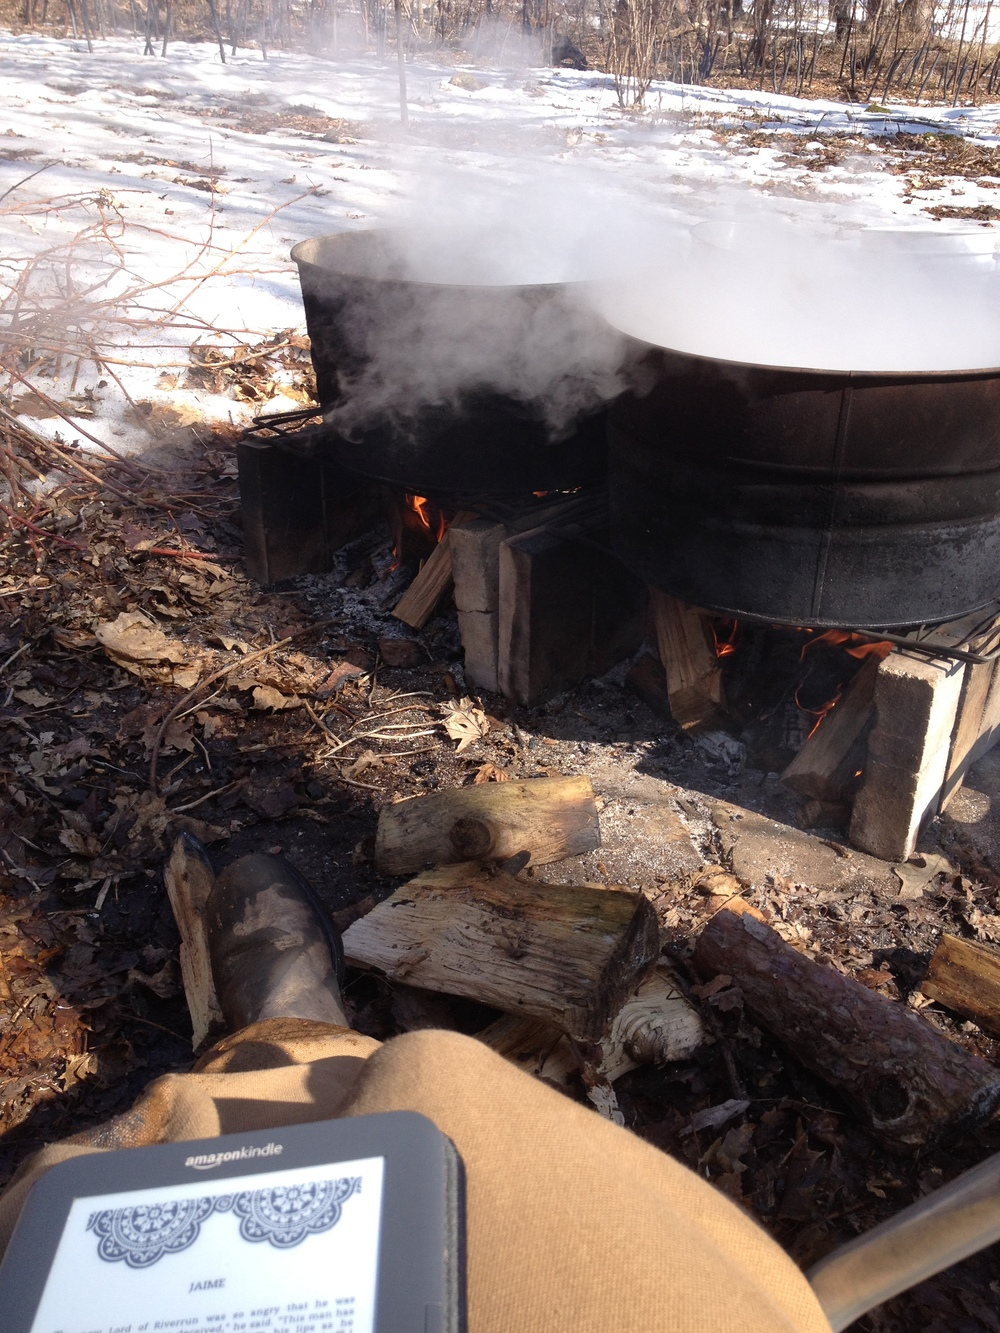 Like I said it's a rough life: feeding a fire all day and finishing the fourth book of A Song of Ice and Fire :)